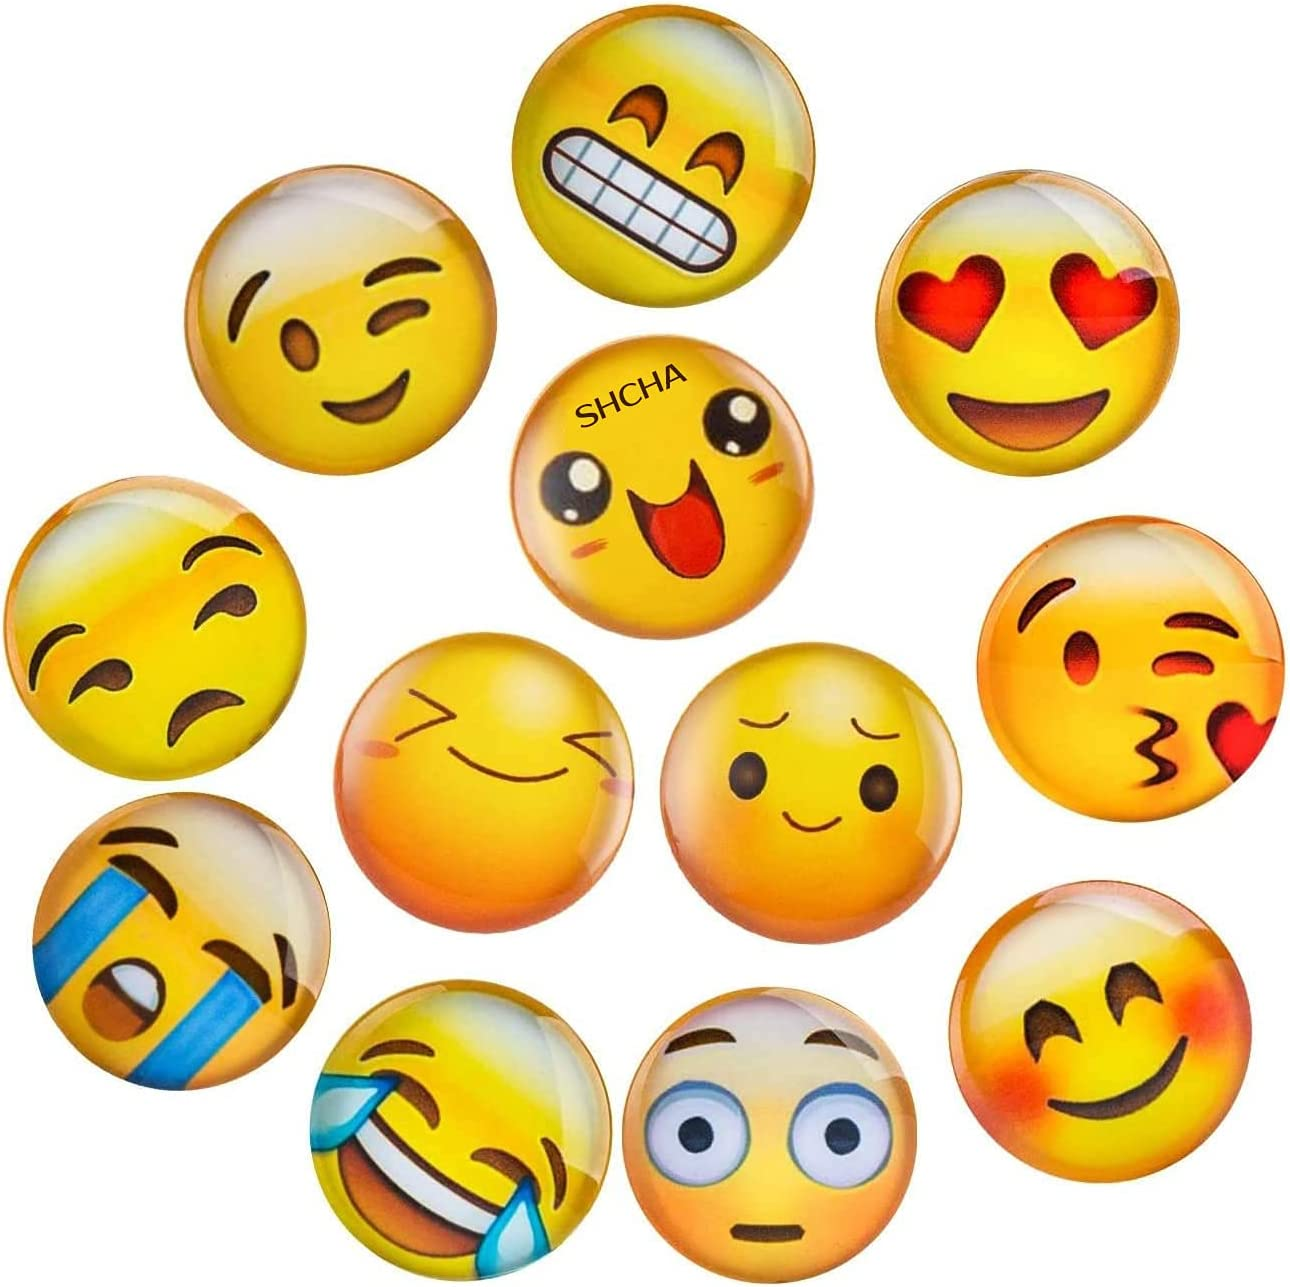 SHCHA Cute Discount mail order Refrigerator Magnets 12 Pack Smile 3D Excellence Glass Positive